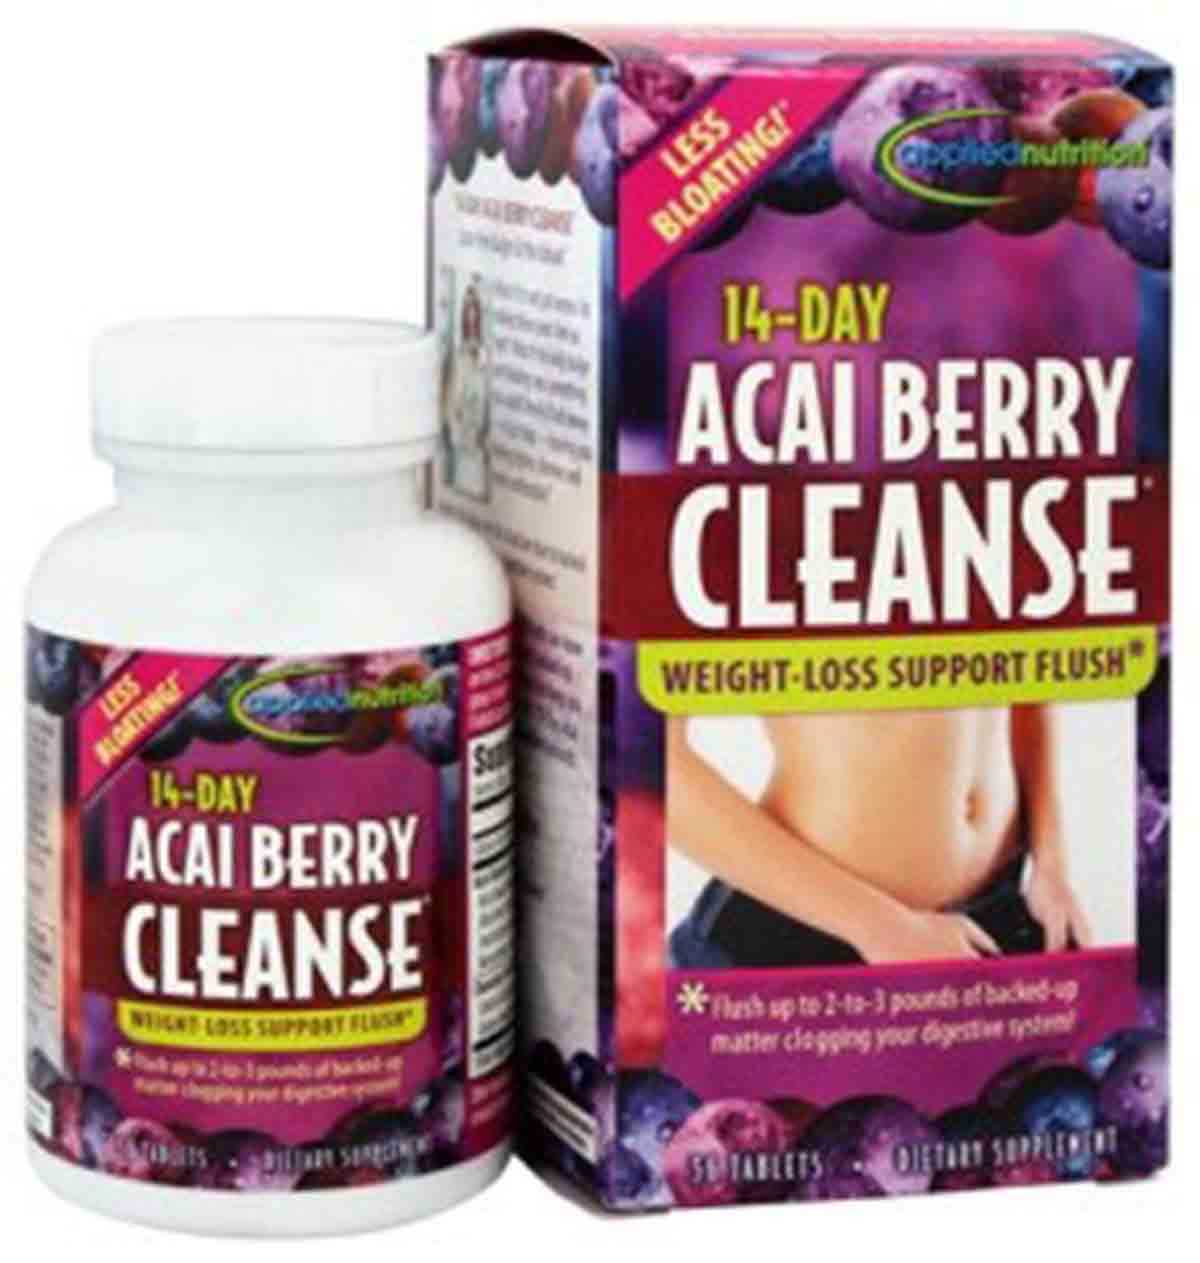 Acai Berry Cleanse Supplement